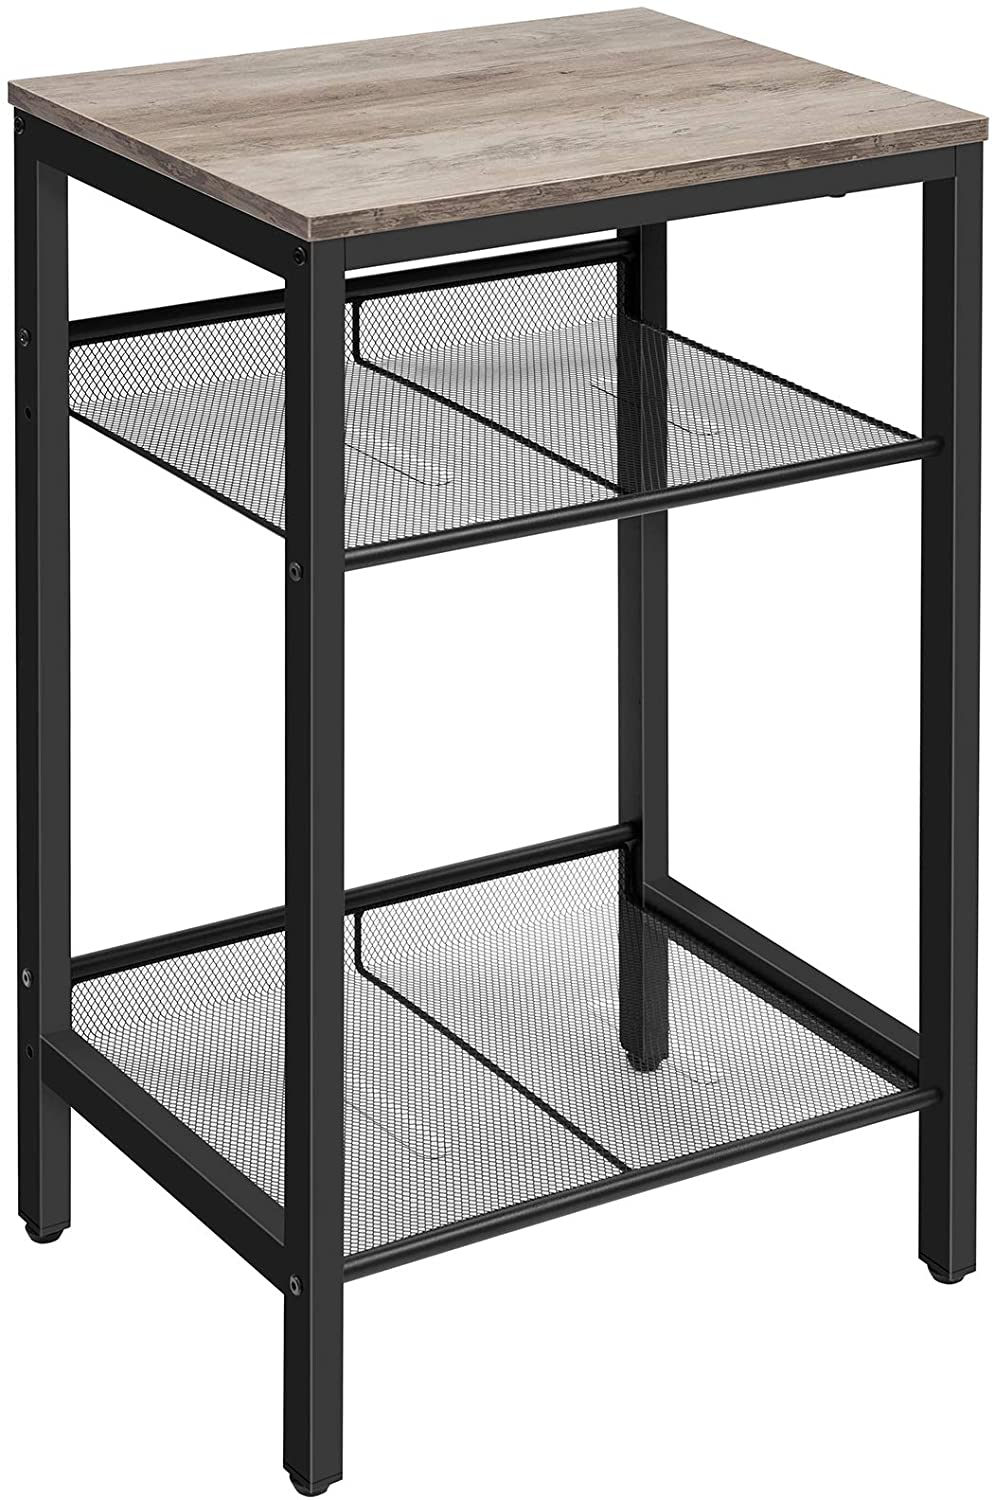 HOOBRO Side Table, Industrial End Telephone Table with Adjustable Mesh Shelves, for Office Hallway or Living Room, Wood Look Accent Furniture, Tall and Narrow, Easy Assembly, Greige and Black BG01DH01